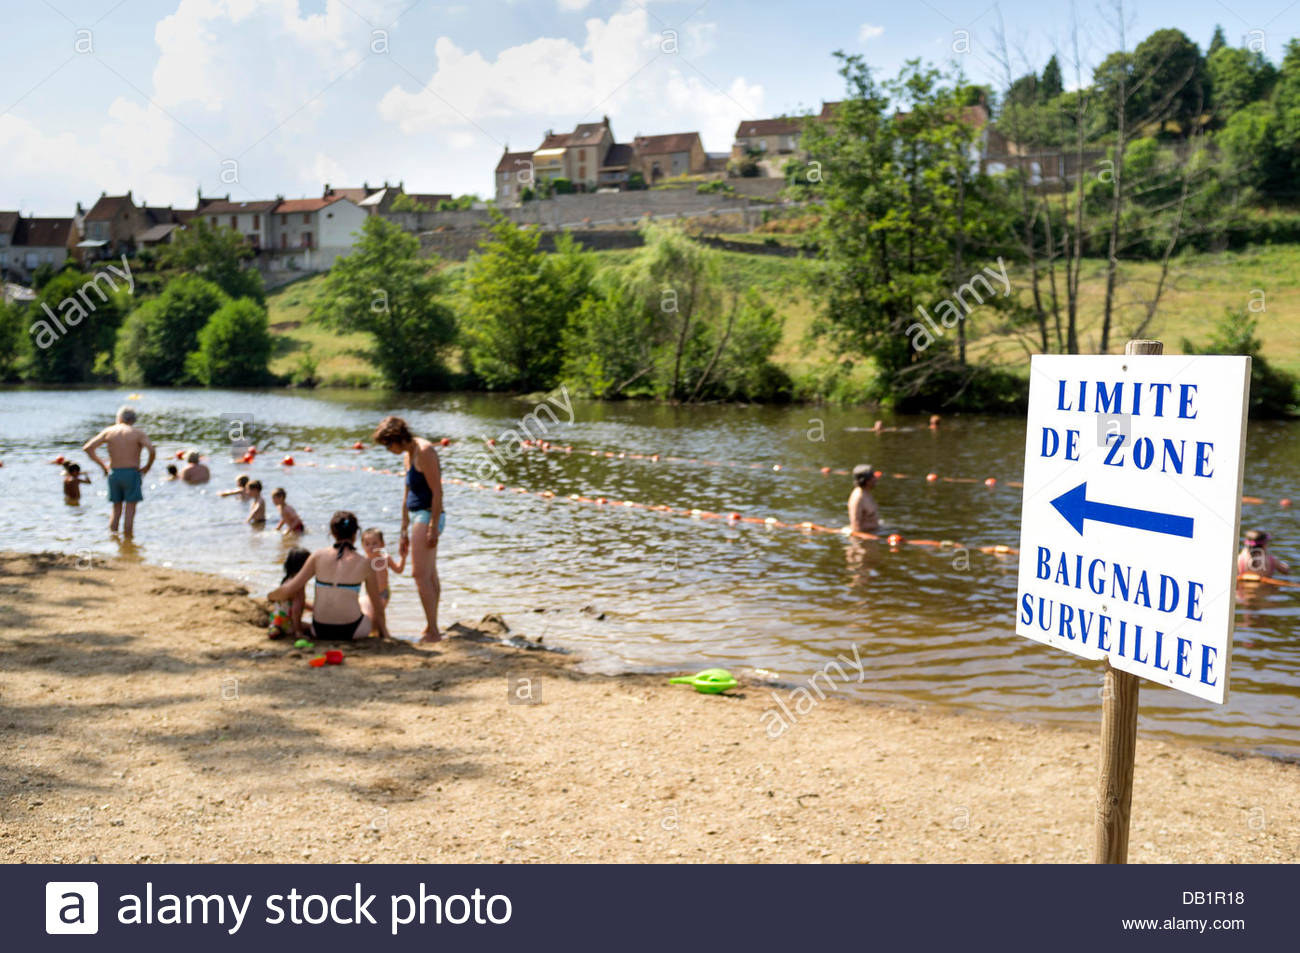 La Celle-Dunoise, Limousin, France. 22nd July, 2013. People cooling off at a beach on the Creuse river to escape - Stock Image